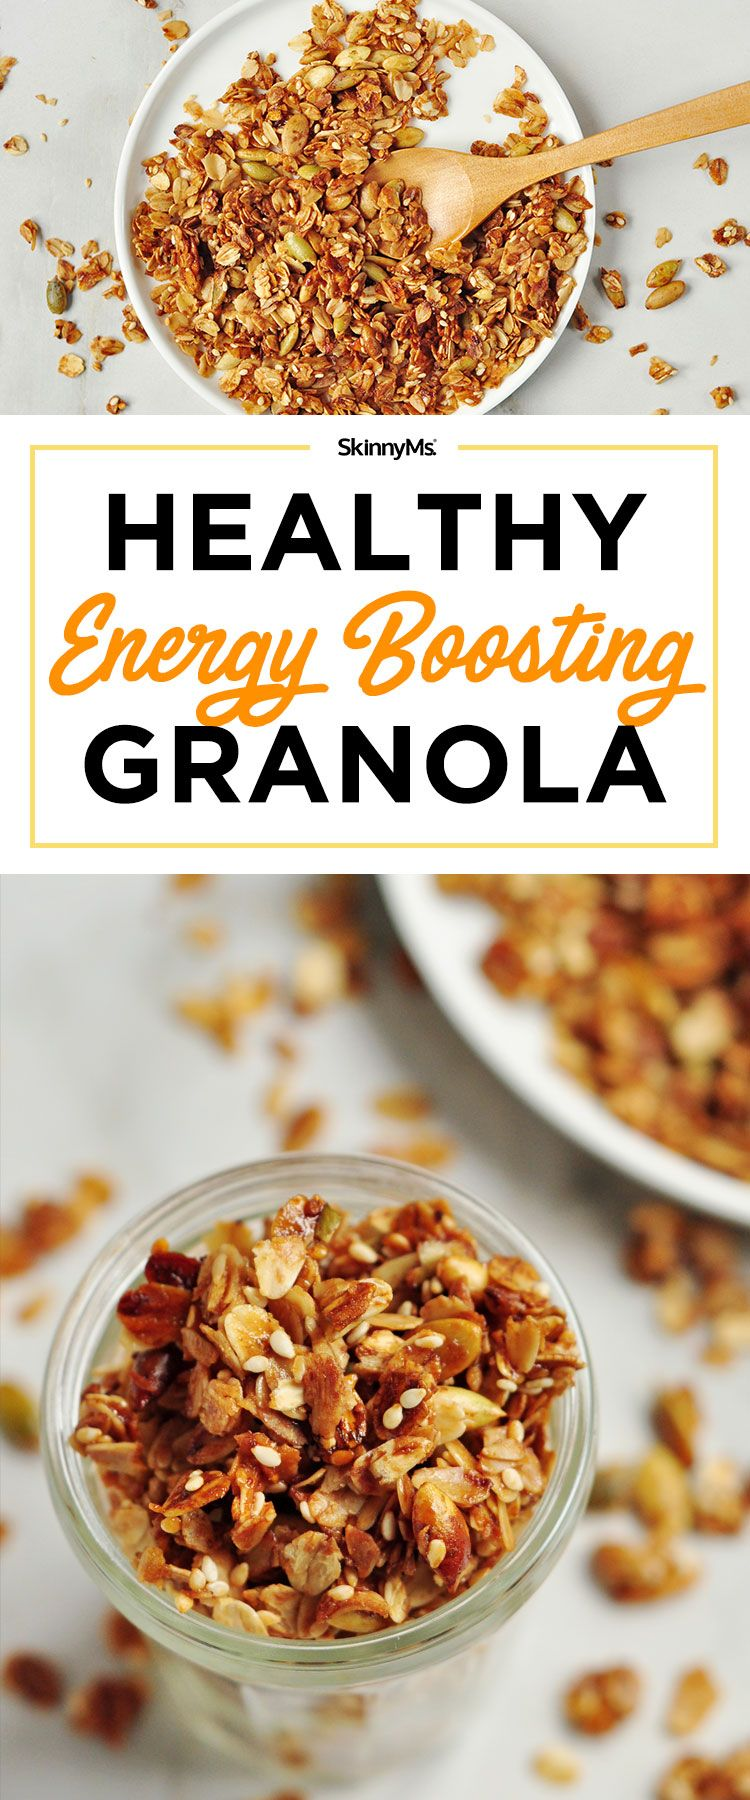 Healthier Energy-Boosting Granola Recipe recommendations